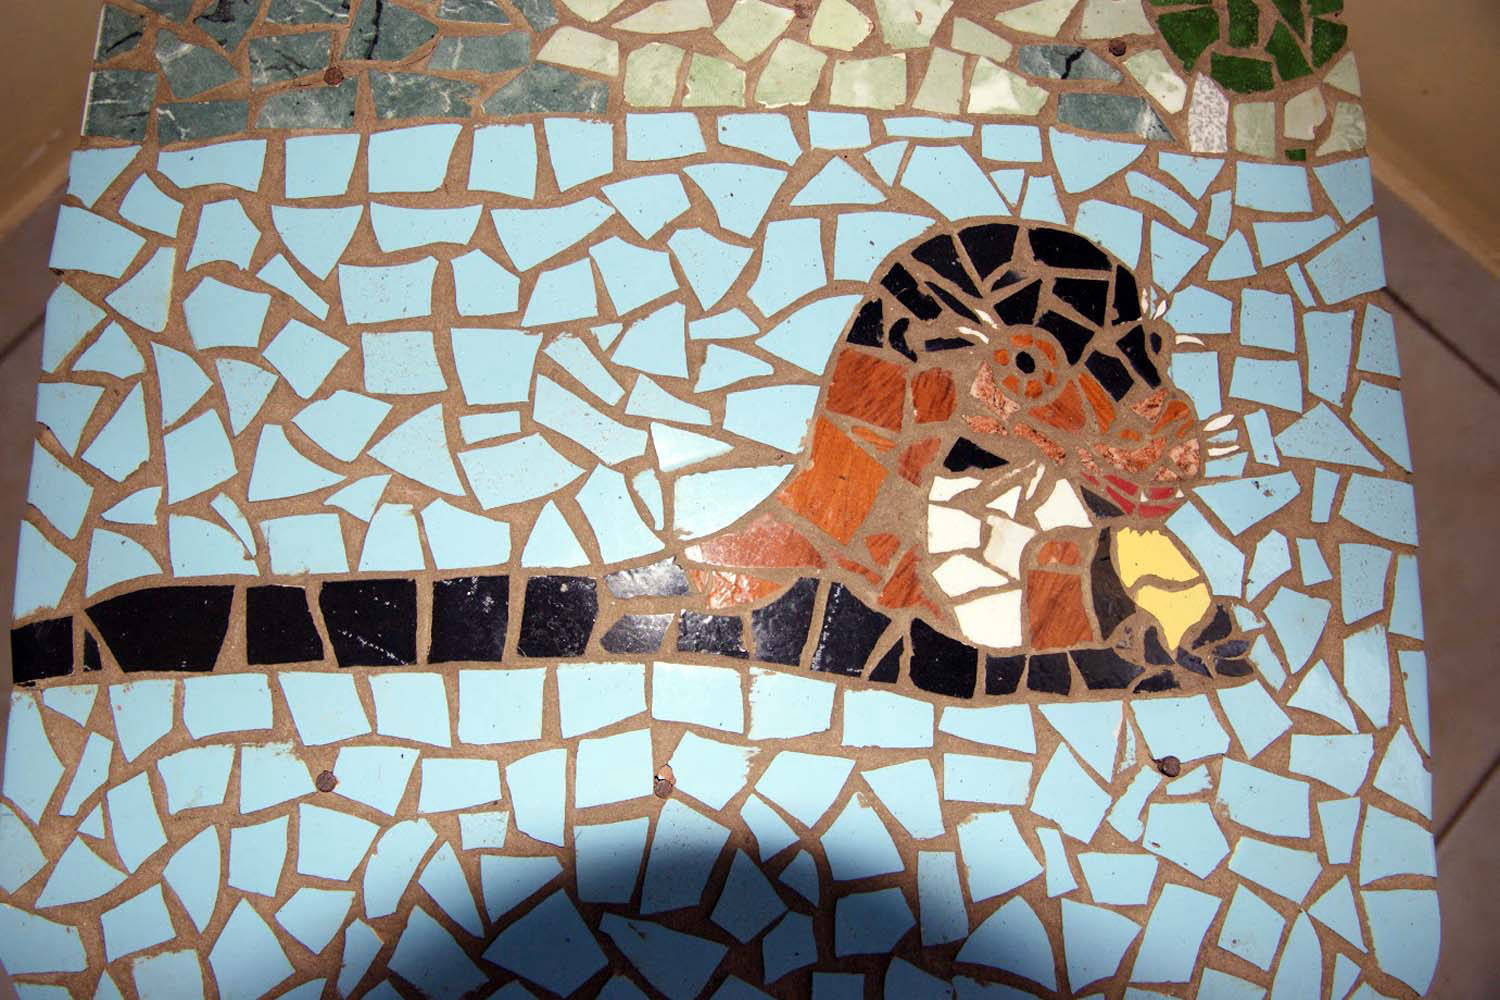 Mosaic on the floor with otter